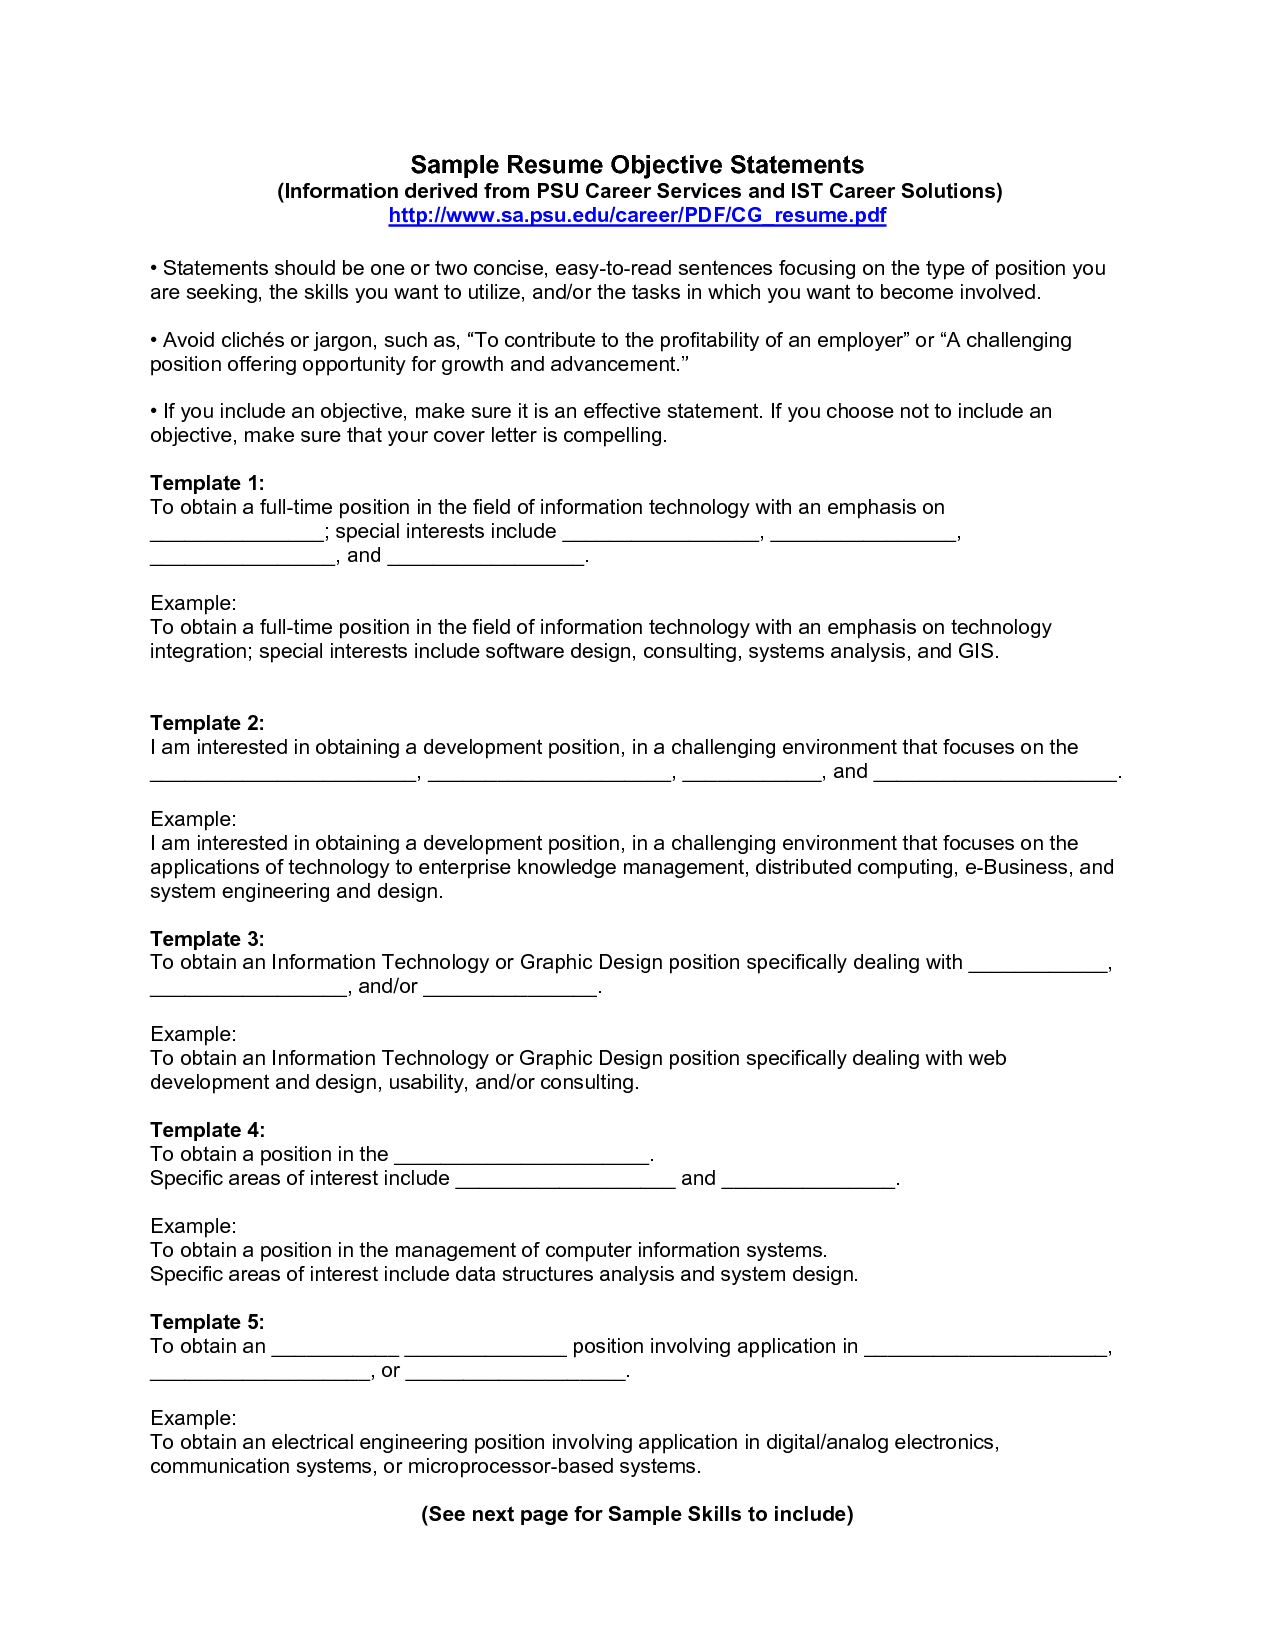 Samplebusinessresume.com/wp Content/uploads/2016/0... Regard To Resume Goal Statements